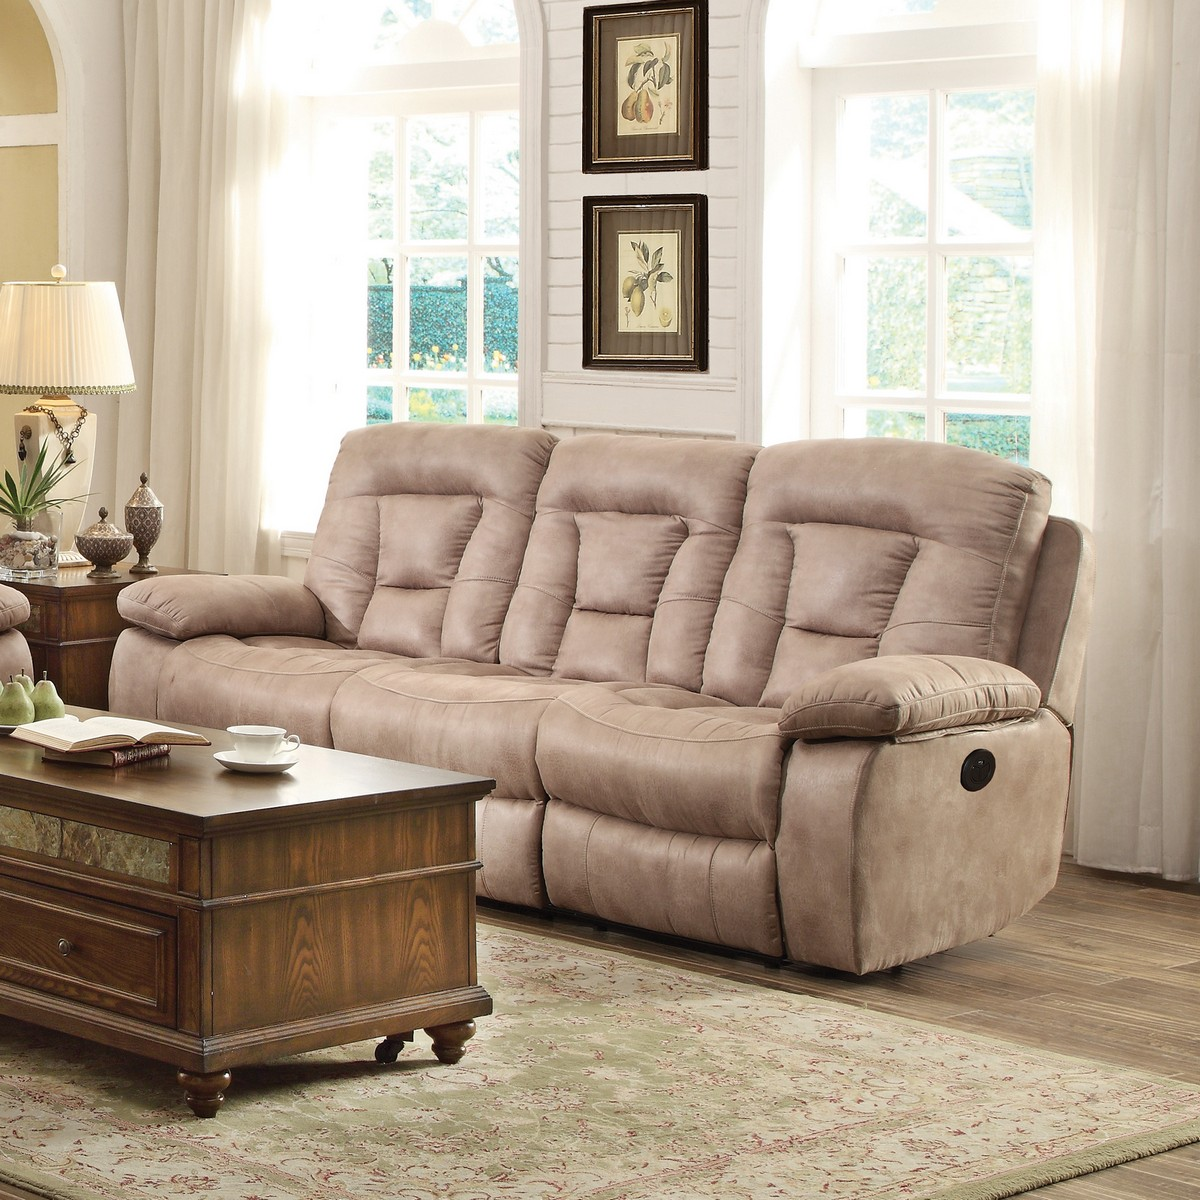 Coaster Evensky Power Reclining Sofa Bone 601861p At